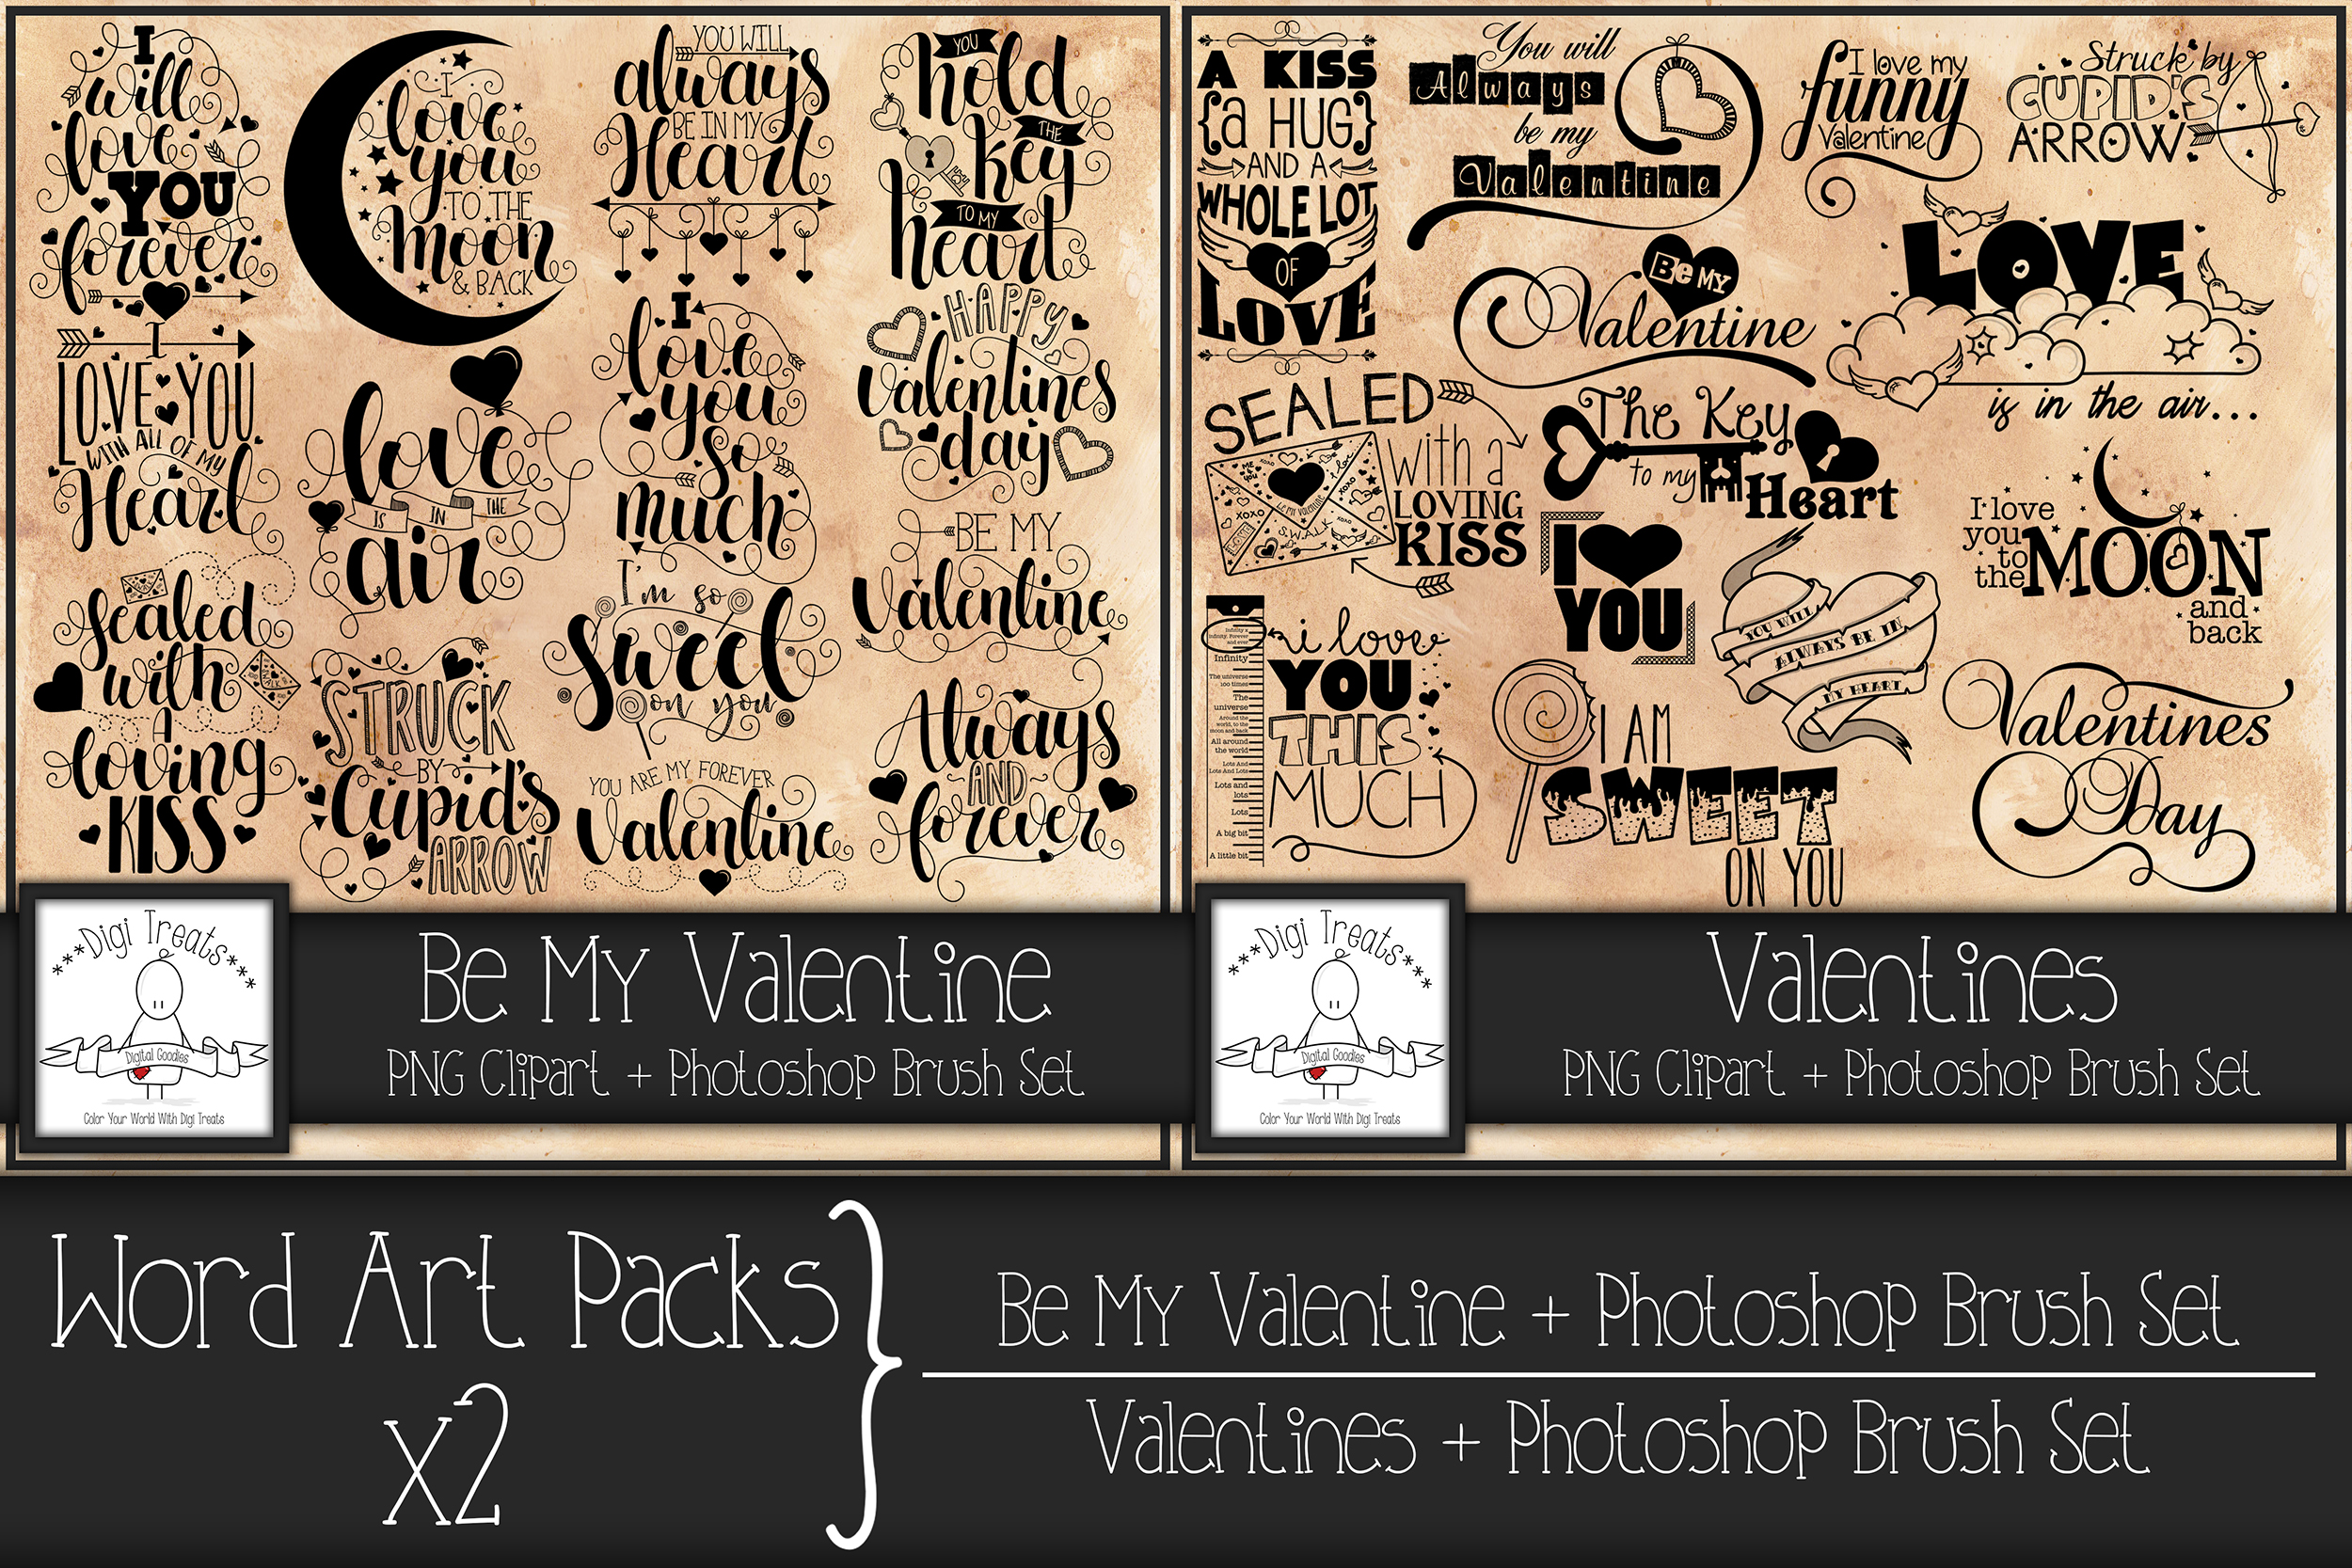 Word Art Packs x 2. Be My Valentine and Valentines example image 1